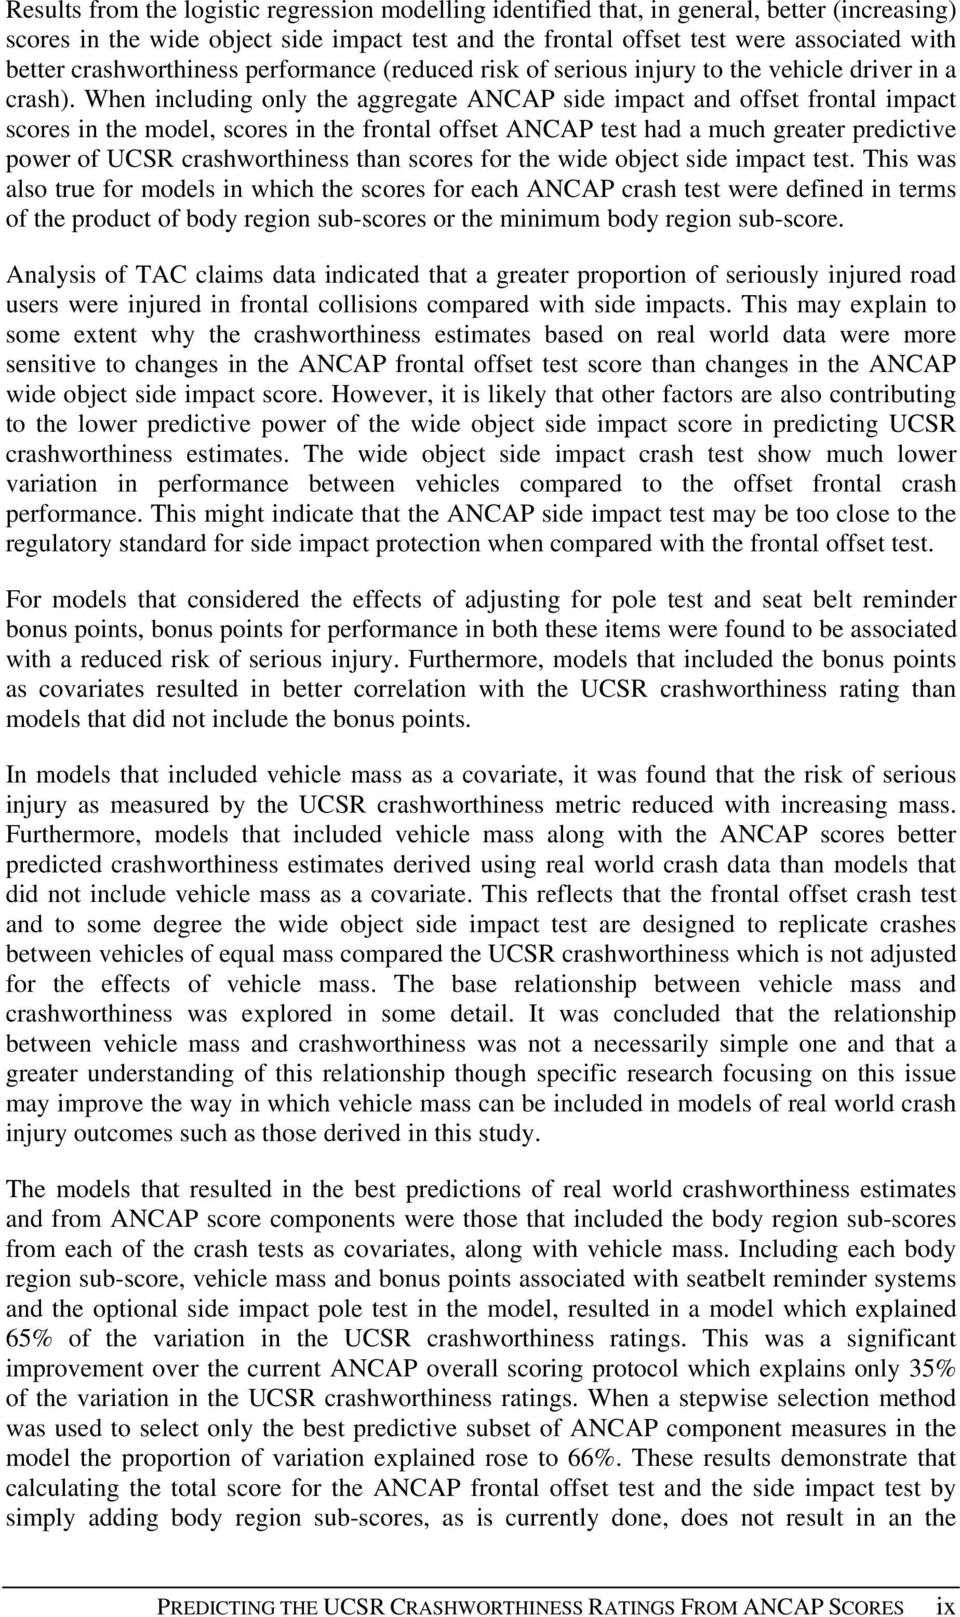 When including only the aggregate ANCAP side impact and offset frontal impact scores in the model, scores in the frontal offset ANCAP test had a much greater predictive power of UCSR crashworthiness